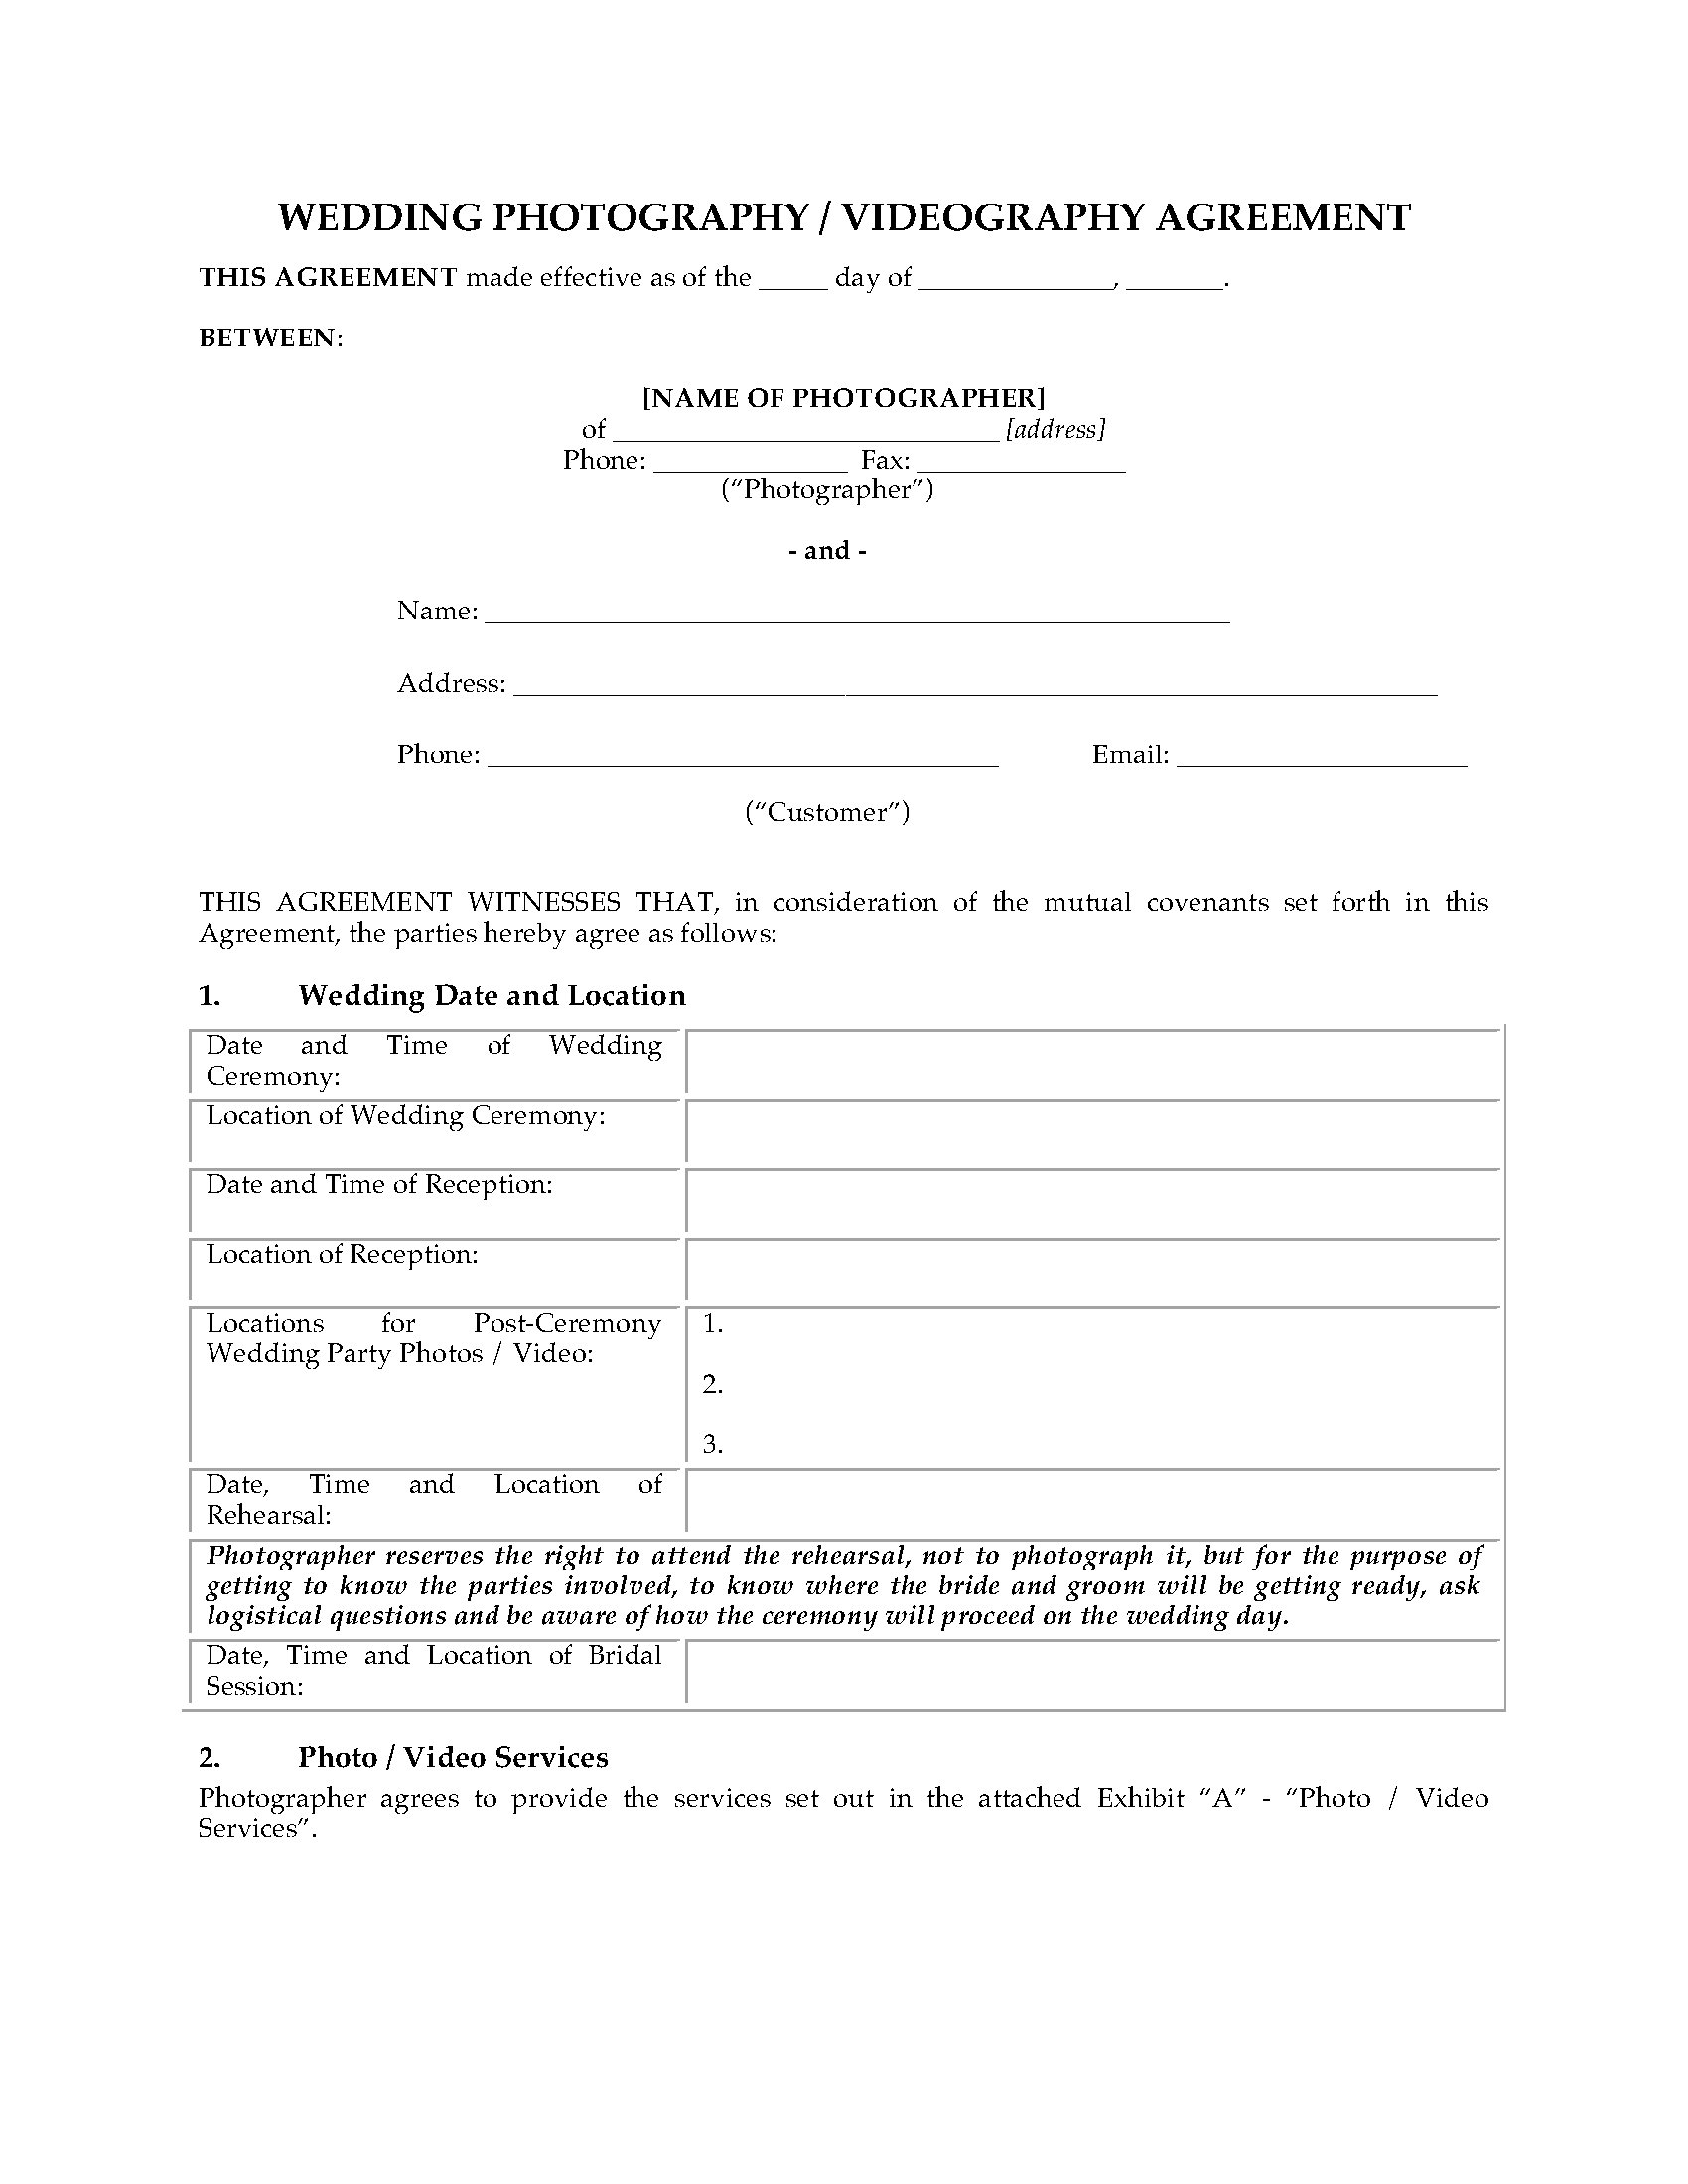 Wedding Photography and Videography Contract – Videography Contract Template